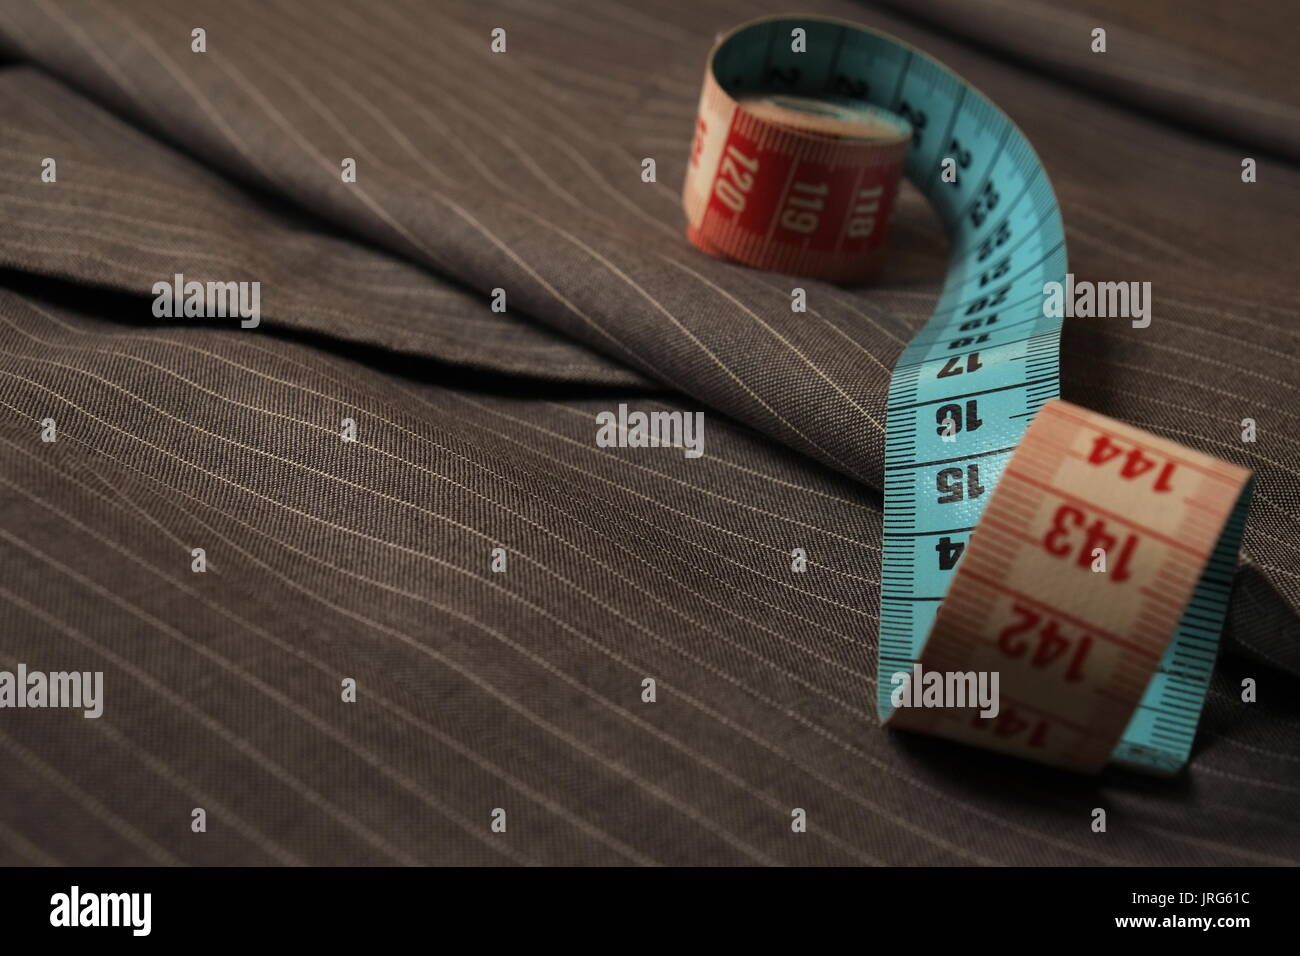 Metric tape on top of a classic gray stripped suit coat - Stock Image